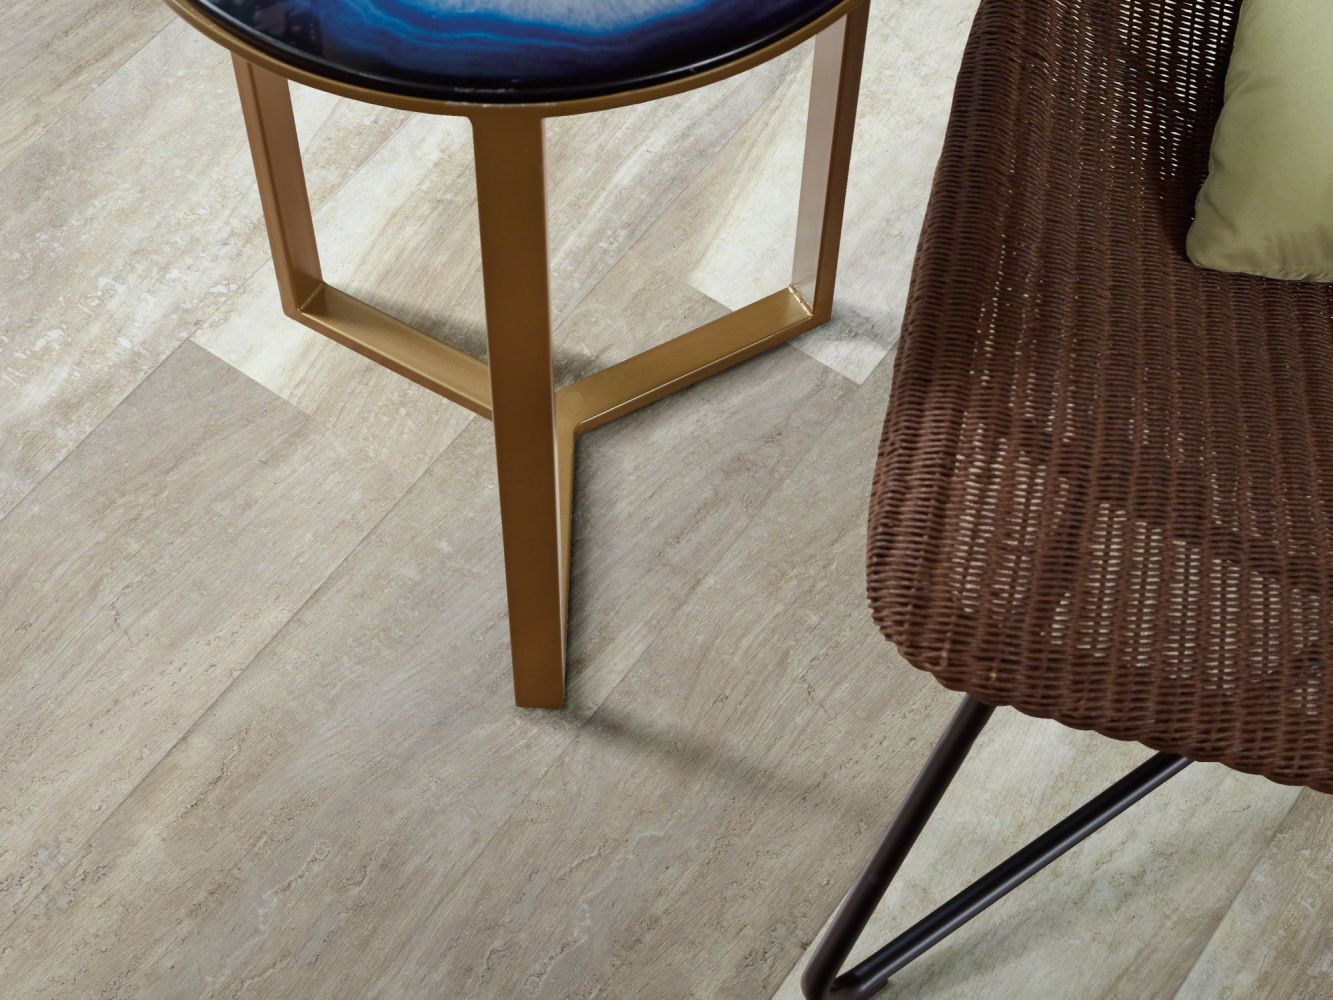 Shaw Floors Resilient Residential Endura Plus Alabaster Oak 00117_0736V